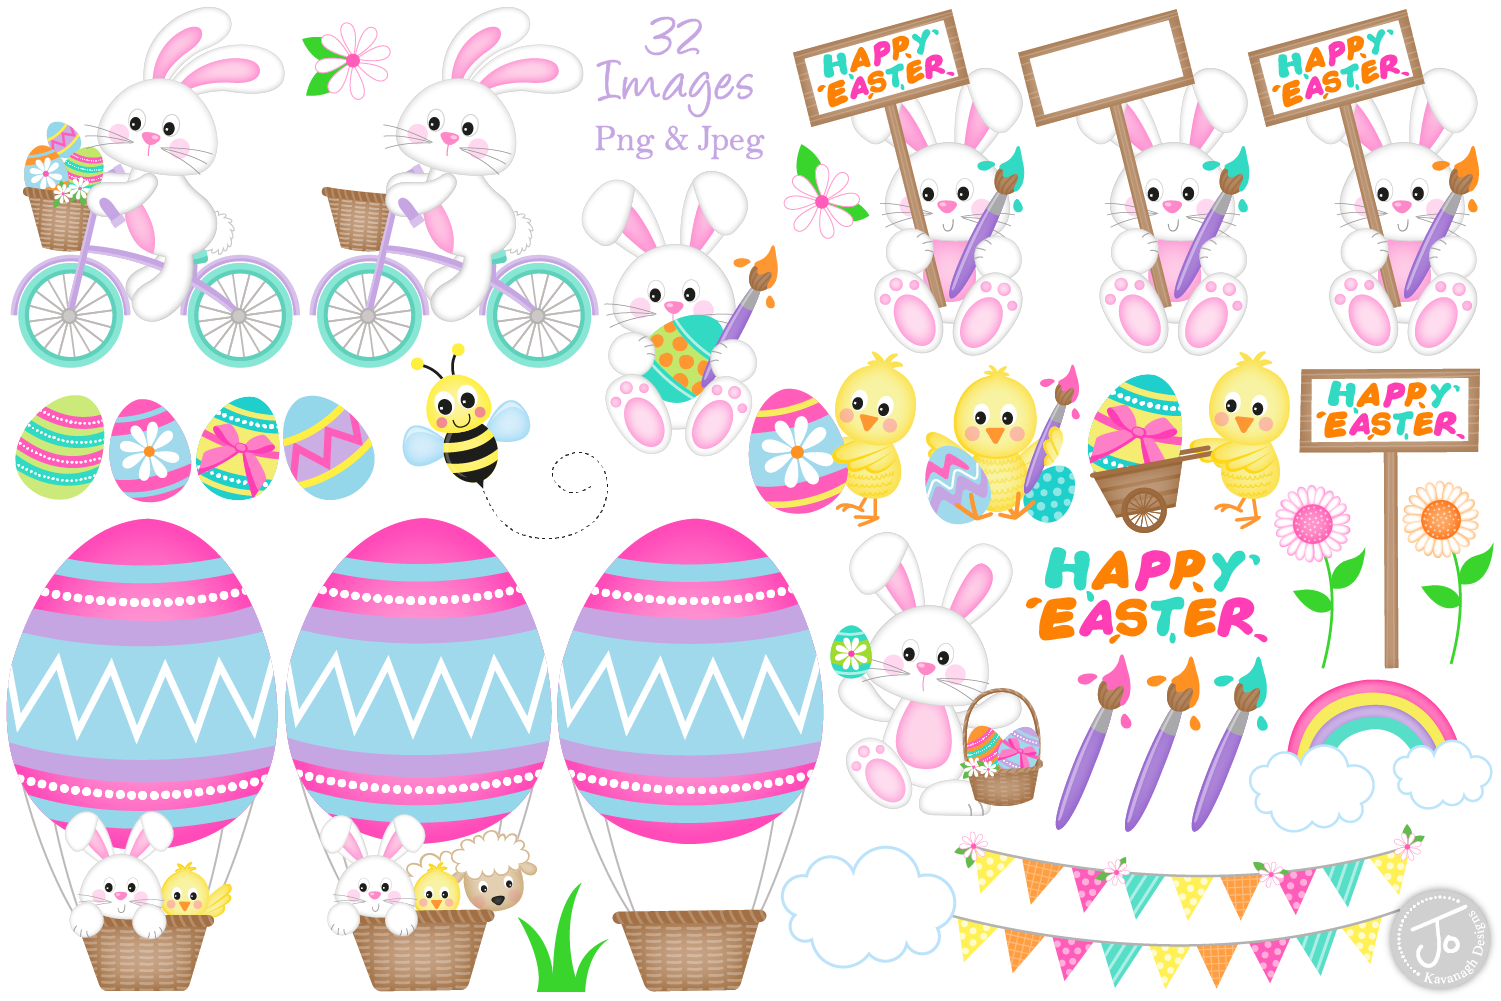 Easter bunny clipart, easter graphics & illustrations -C33 example image 2